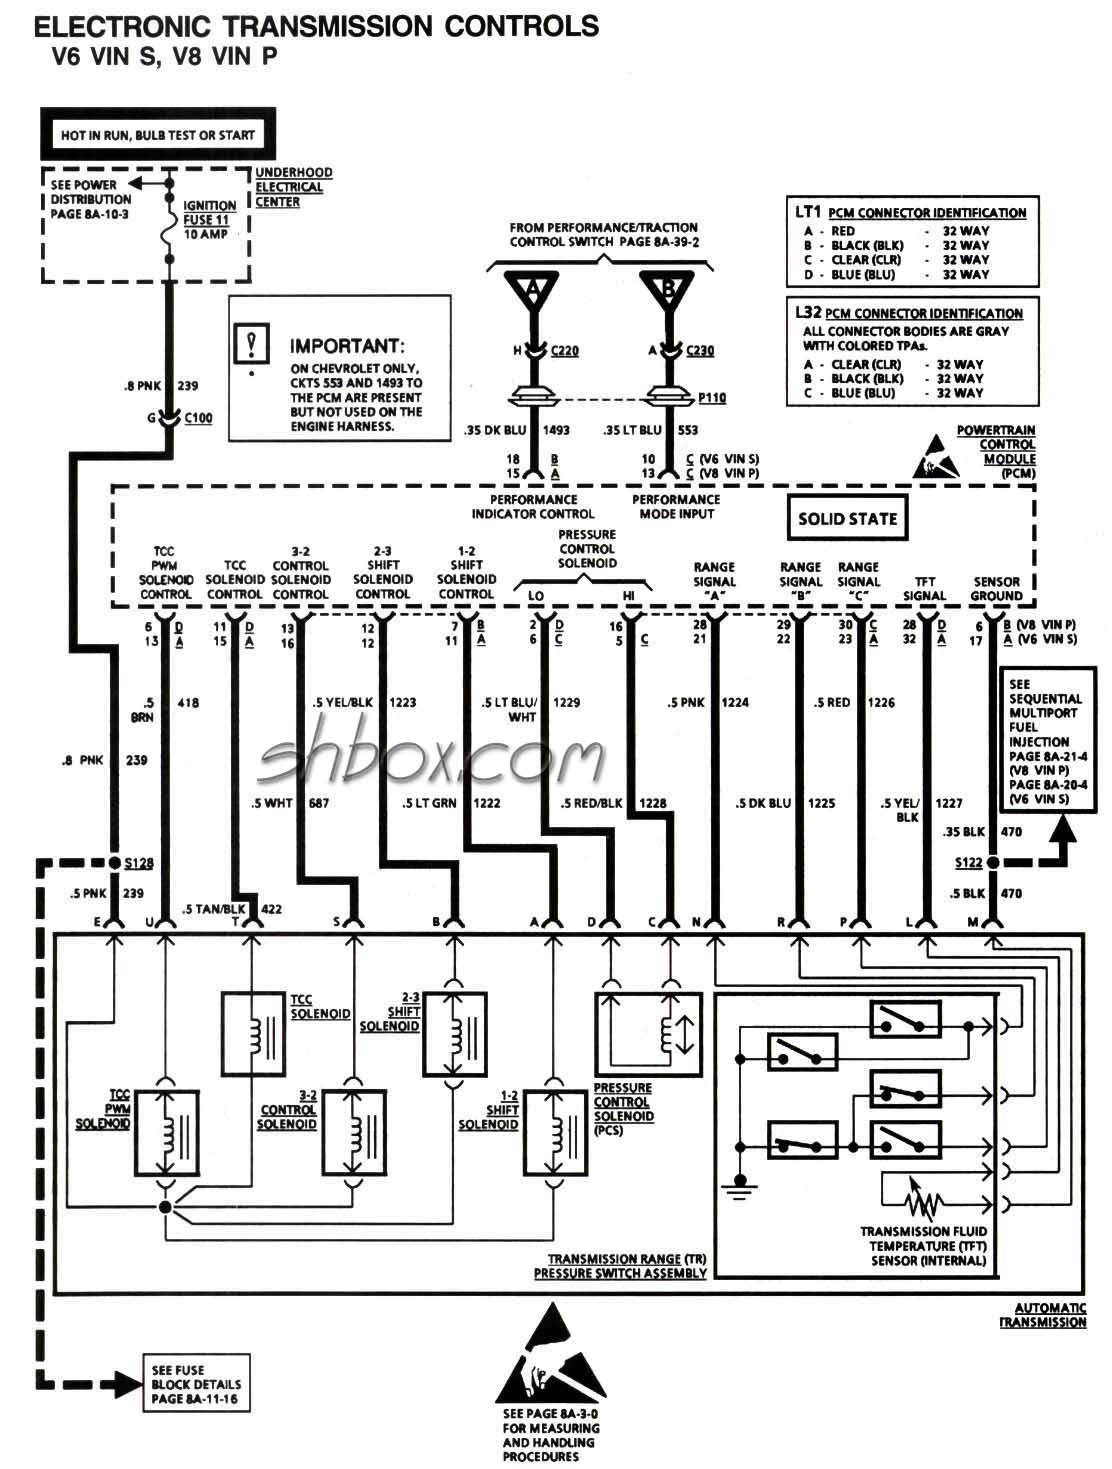 4l60e prndl wiring - Hot Rod Forum : Hotrodders Bulletin Board on 4t65e wiring diagram, cd4e wiring diagram, 4t40e wiring diagram, nv4500 wiring diagram, turbo 400 wiring diagram, 5r55s wiring diagram, 4x4 wiring diagram, 700r4 wiring diagram, transmission wiring diagram, 4l60e transmission, 6l90e wiring diagram, aode wiring diagram, neutral safety switch wiring diagram, harness wiring diagram, th350c wiring diagram, th350 wiring diagram, e4od wiring diagram, 4l80e wiring diagram, 5r110 wiring diagram, a604 wiring diagram,